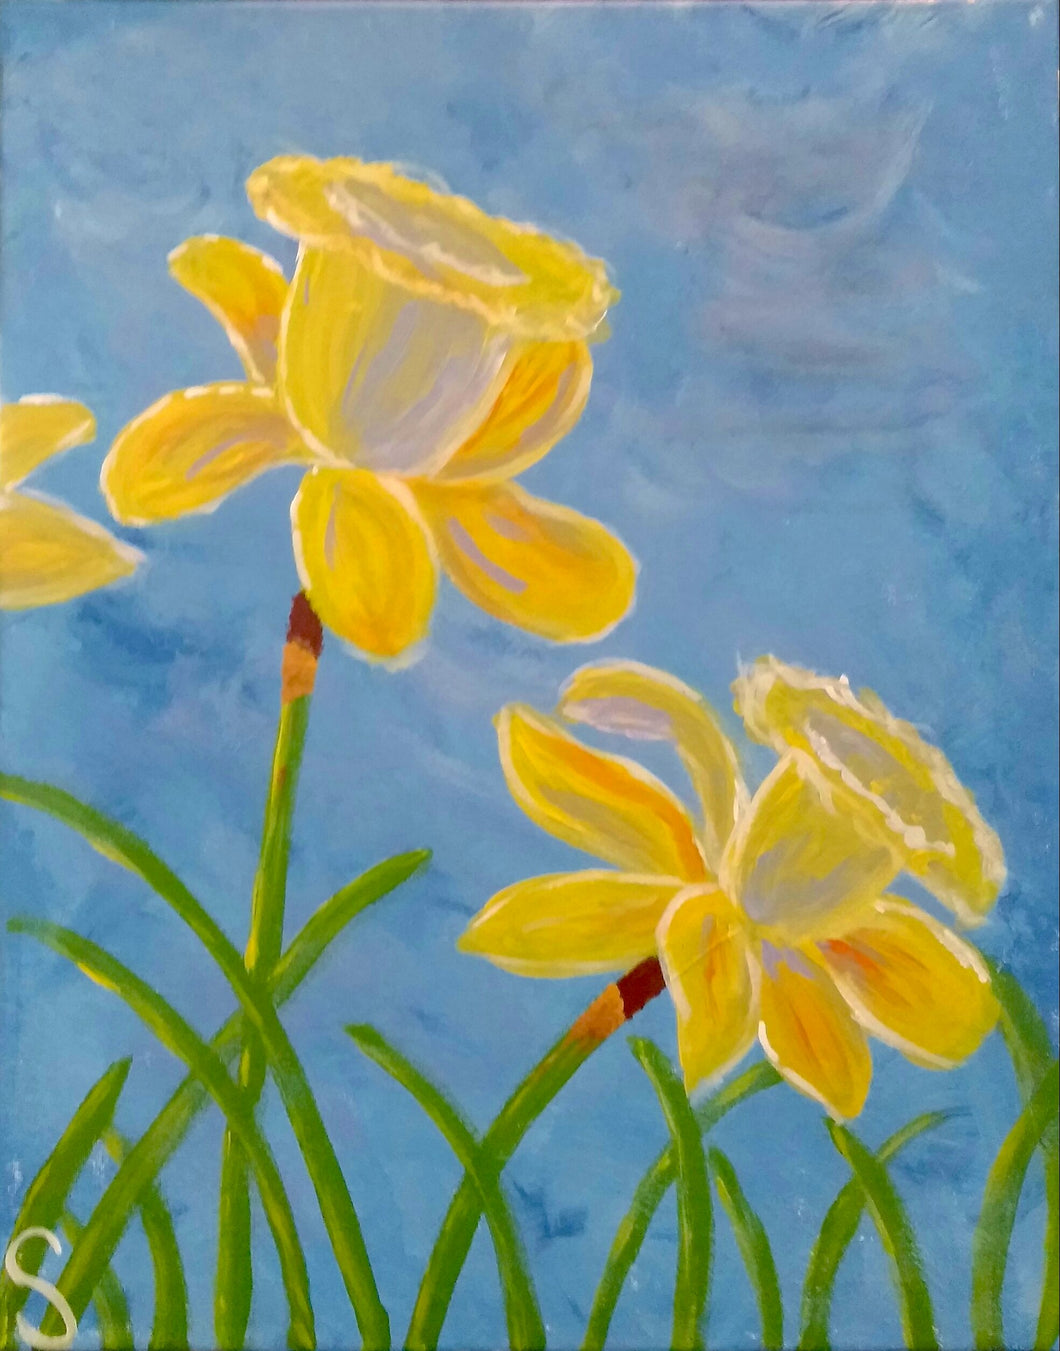 Daffodils Paint Kit (8x10 or 11x14)